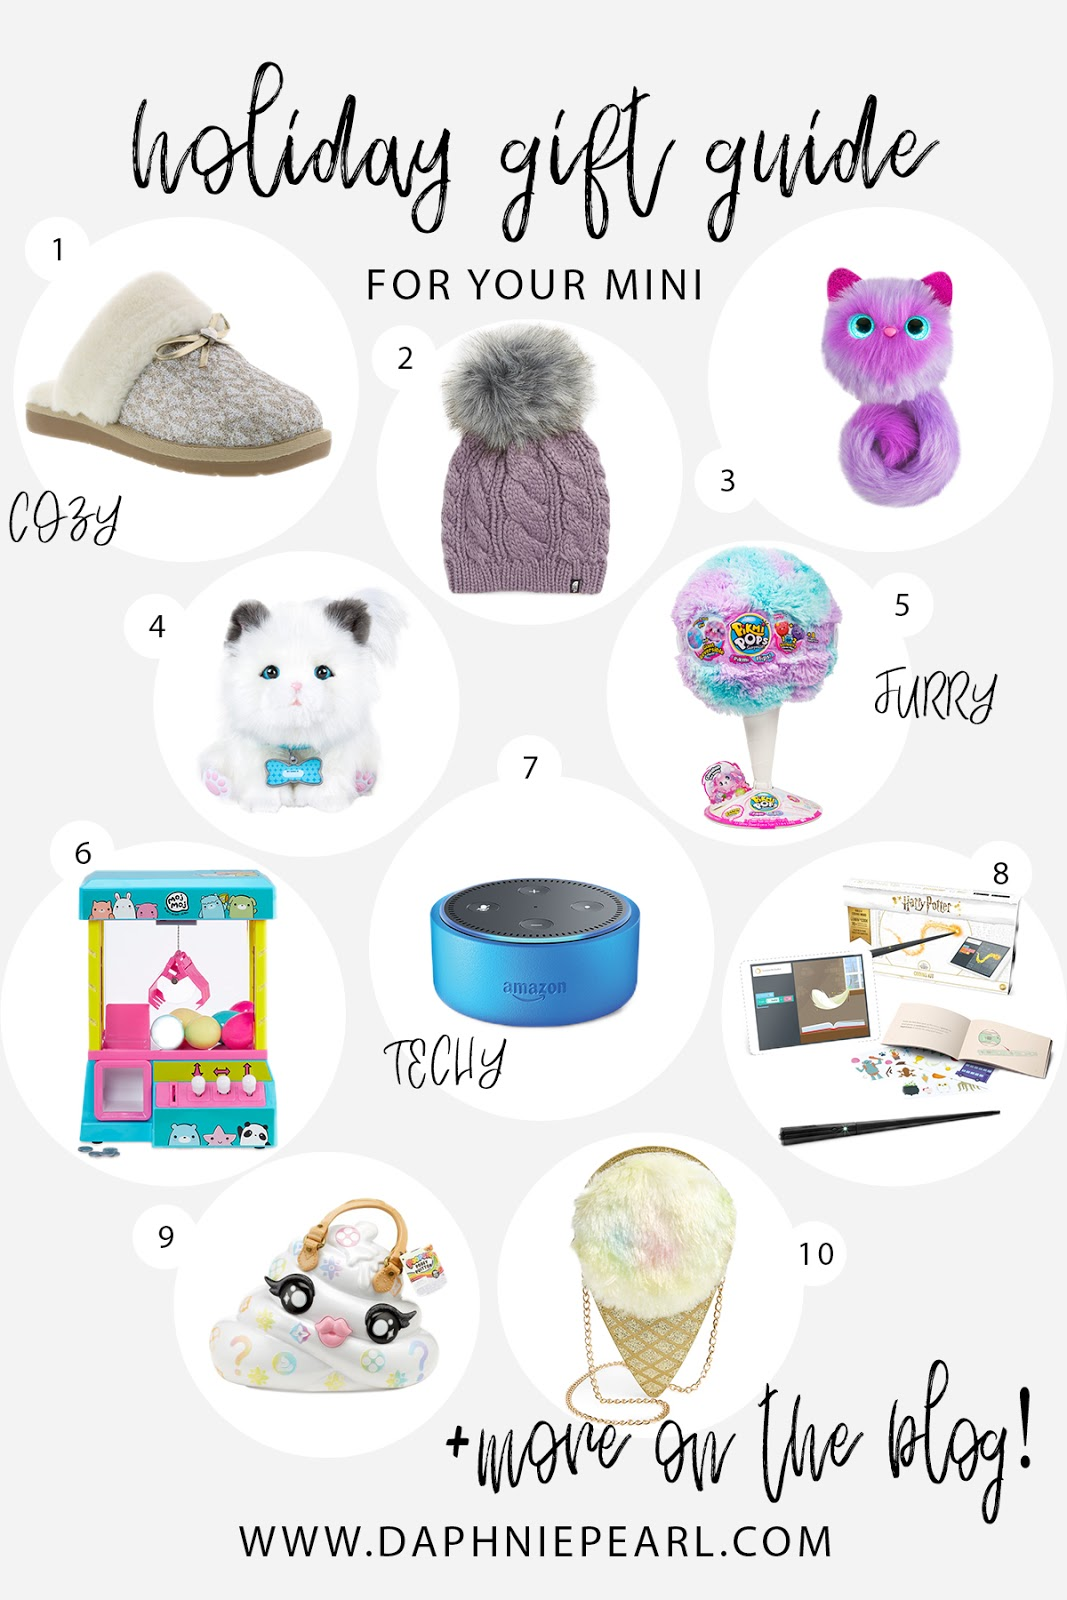 Holiday Gift Guide for Your Mini - sharing Daphnie's Christmas List and all of her favorite toys and wishes for the holiday! Little Girl Christmas Gift Ideas Holiday Present Idea Slippers Ugg MojMoj Moj Moj Claw Machine The North Face Beanie Pomsie Unicorn Pikmi Pop Flip Giant Kitty Fur Electronic Echo Dot Kids Kano Harry Potter Coding Wand Pooey Puitton Poopsie Slime Surprise Bag